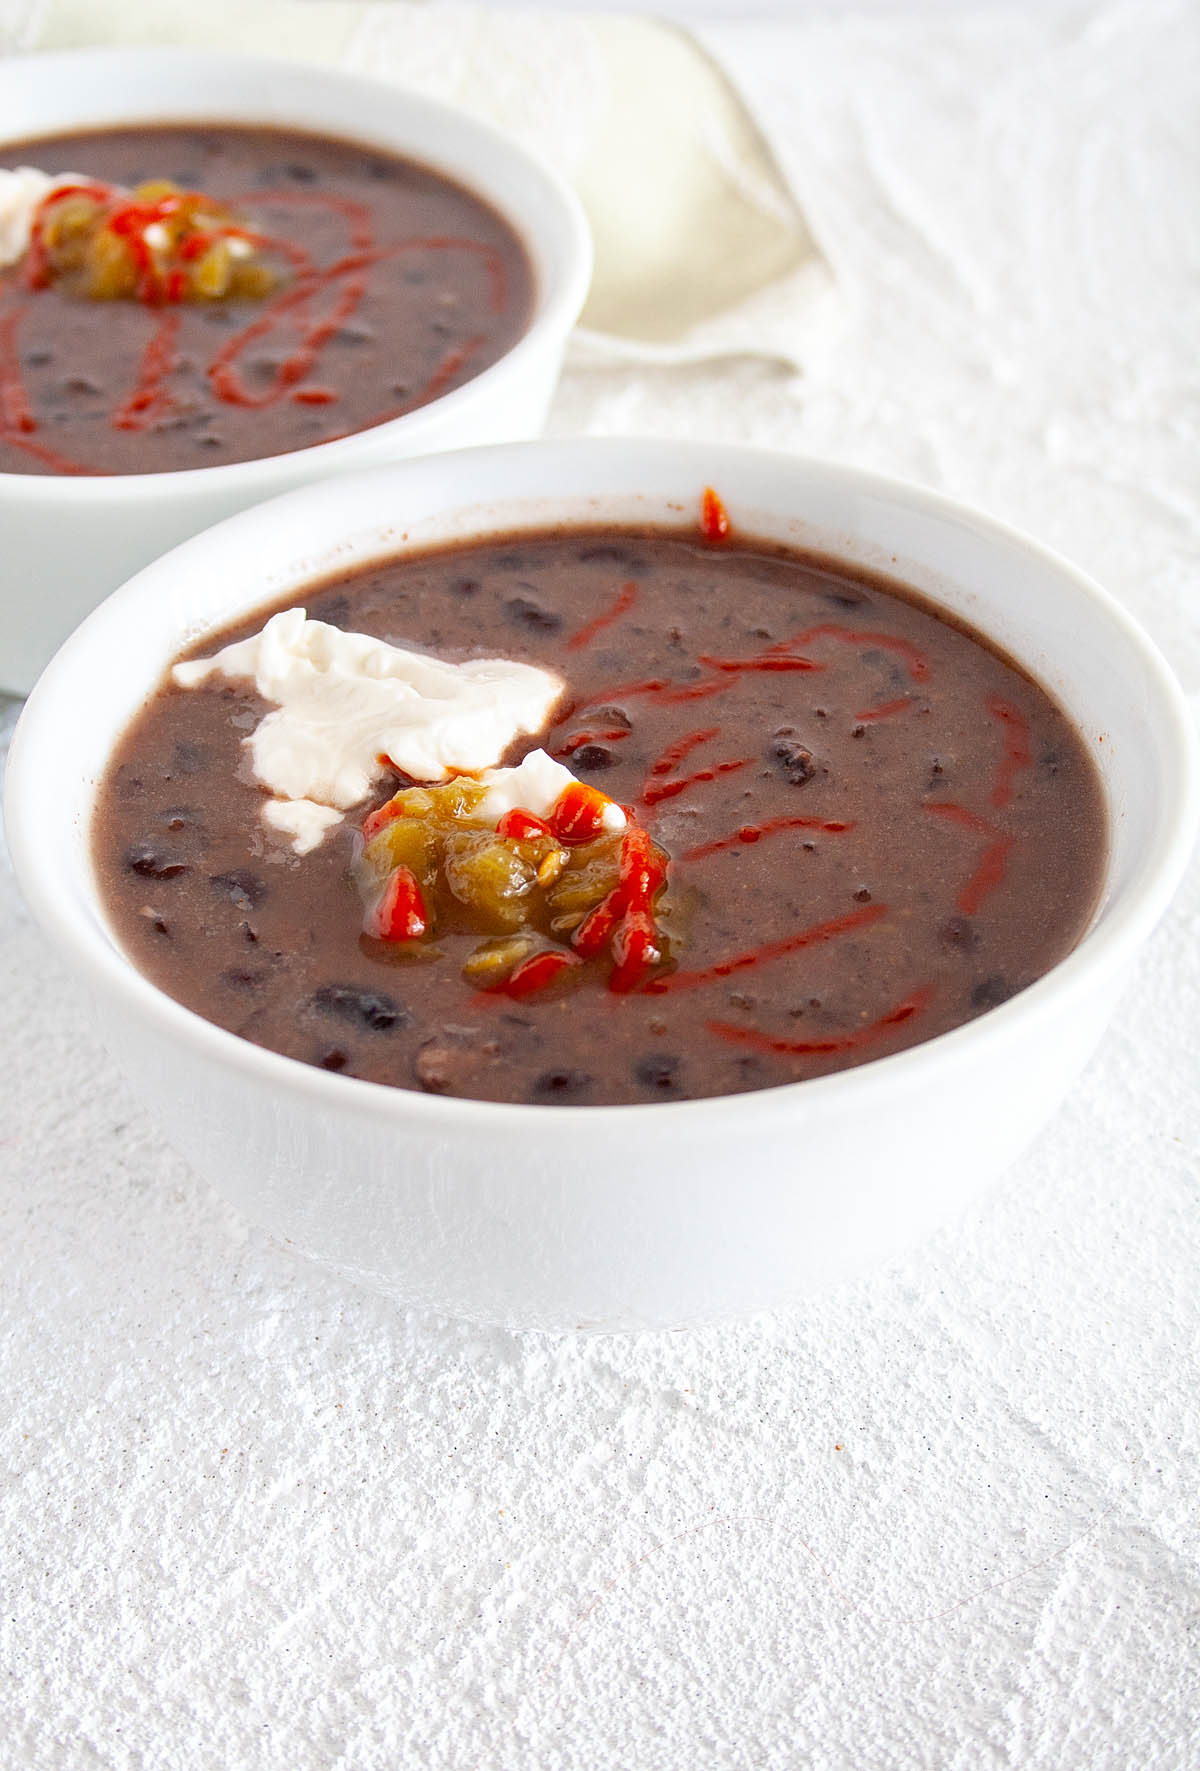 Vegan Black Bean Soup with roasted green chiles, vegan sour cream, and hot sauce on top.